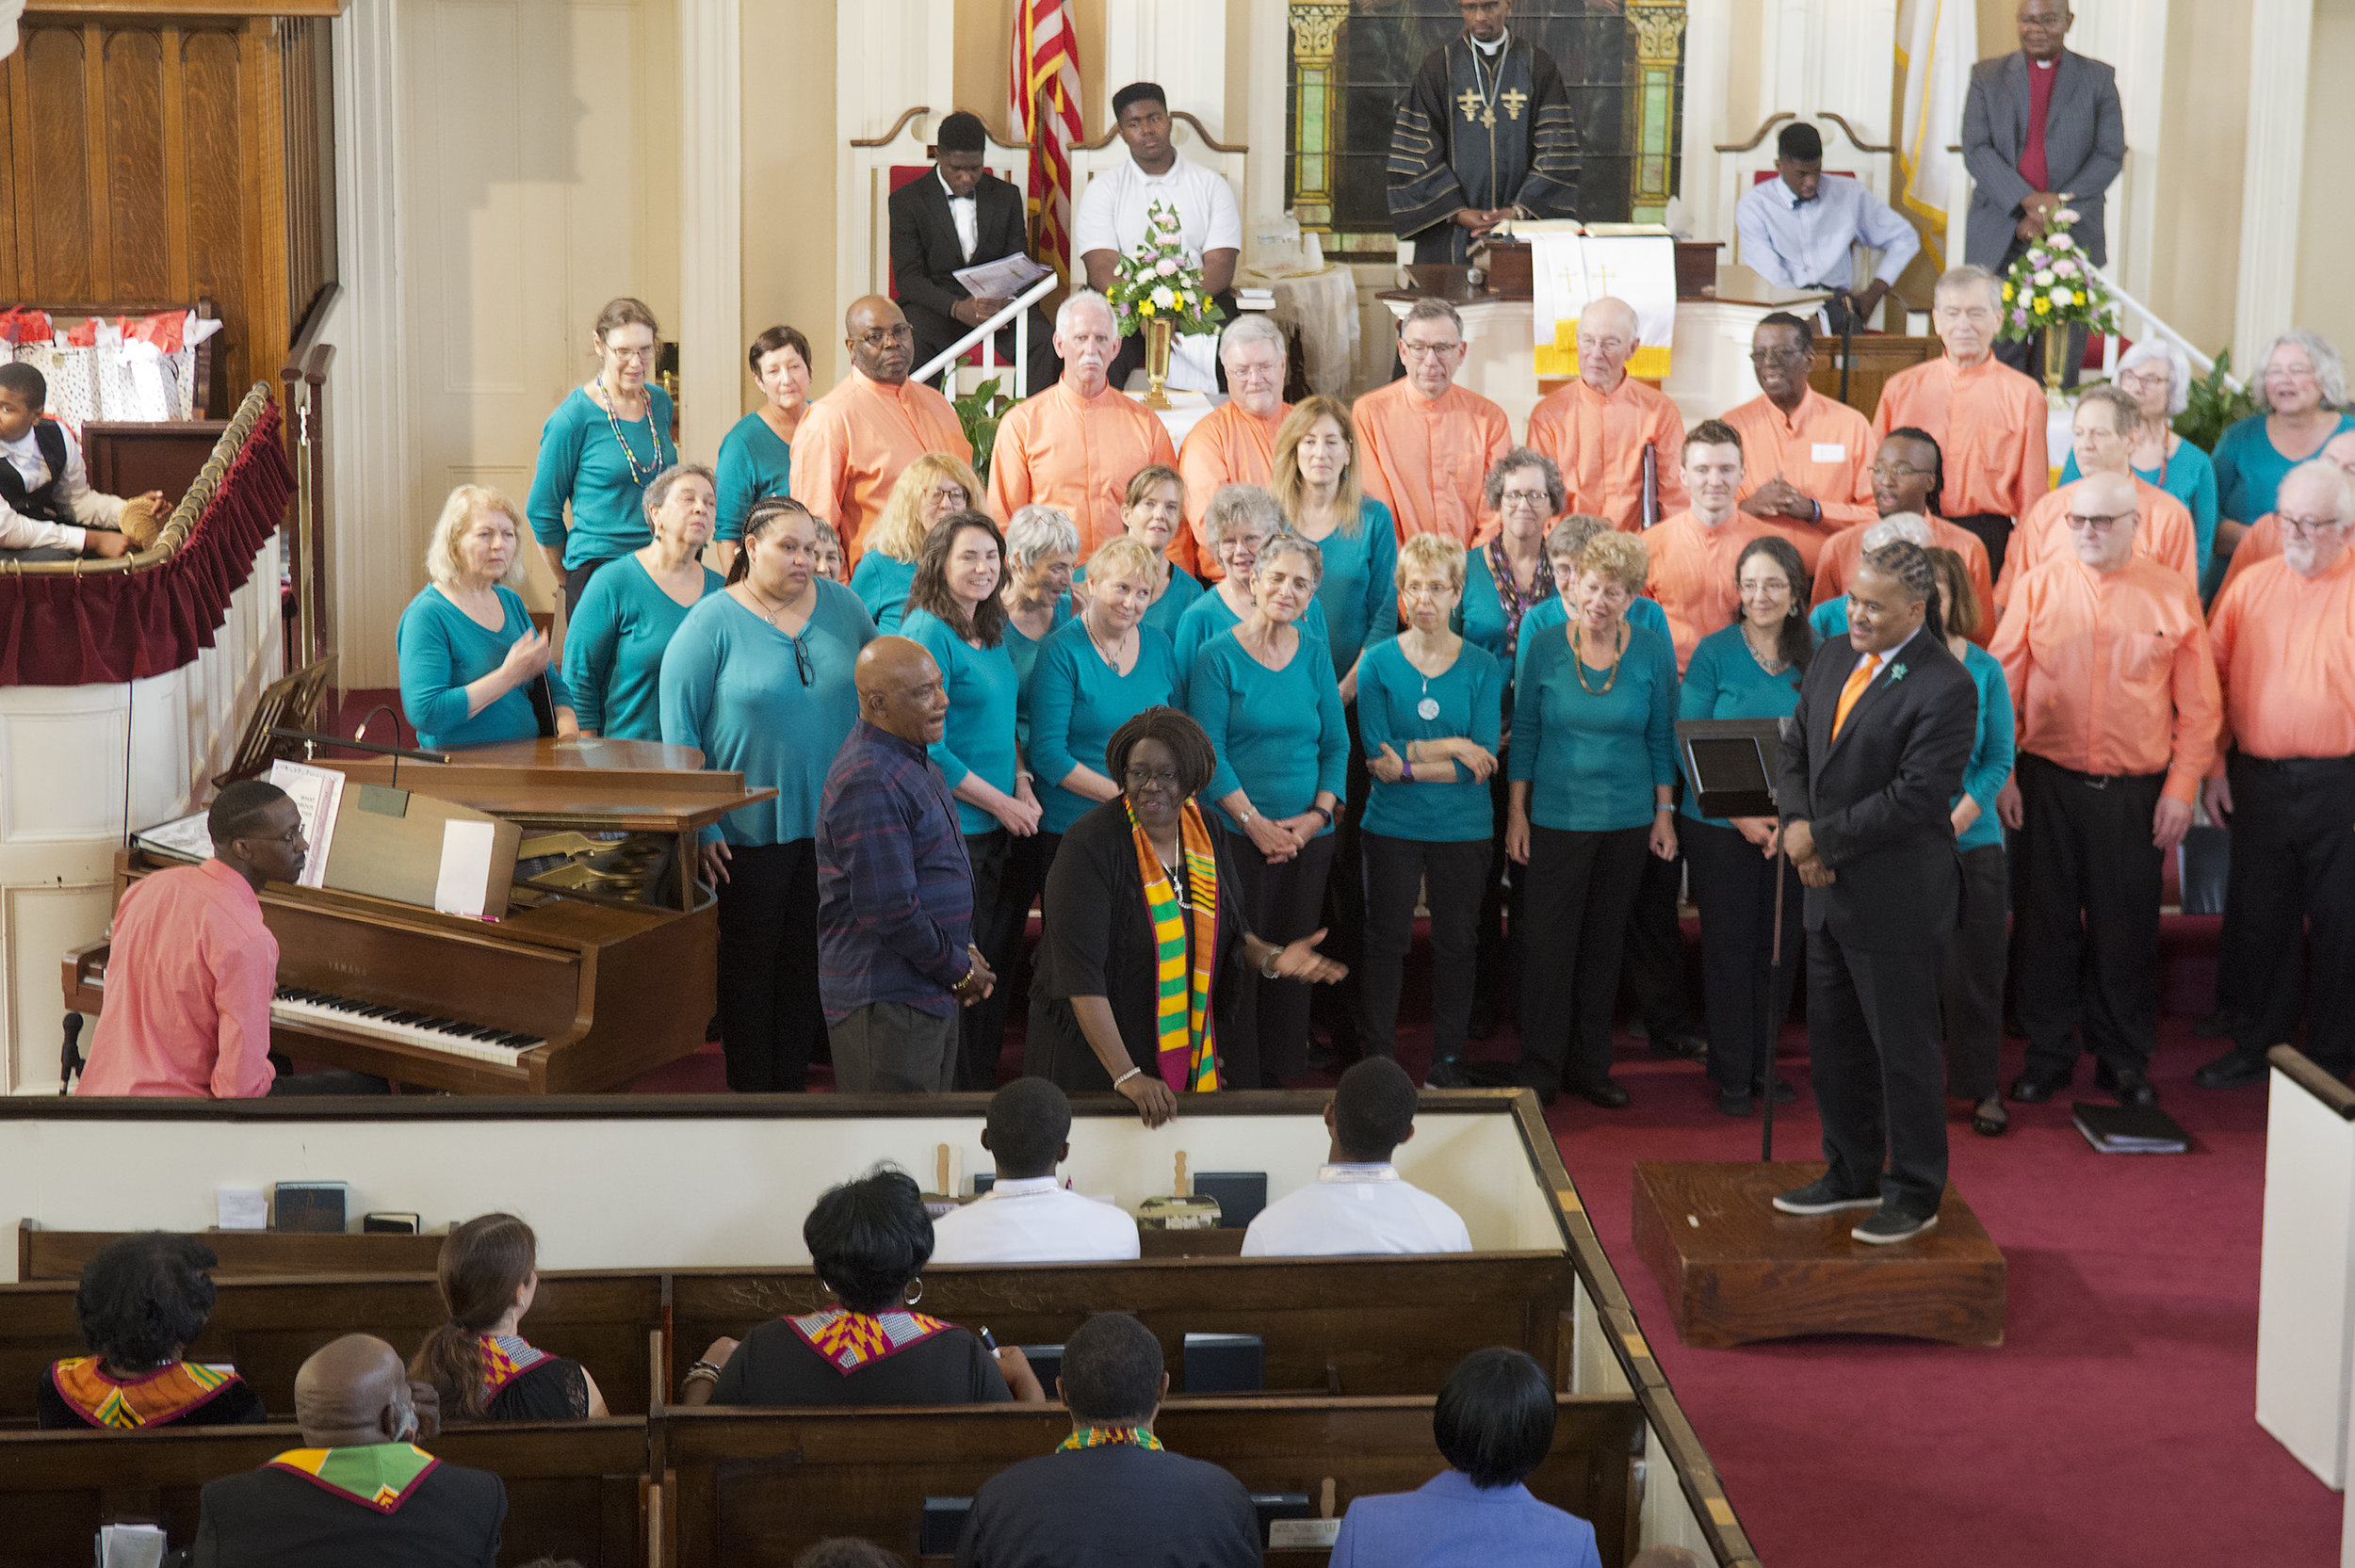 JB Singing at the Mt. Zion AME Church in Charleston